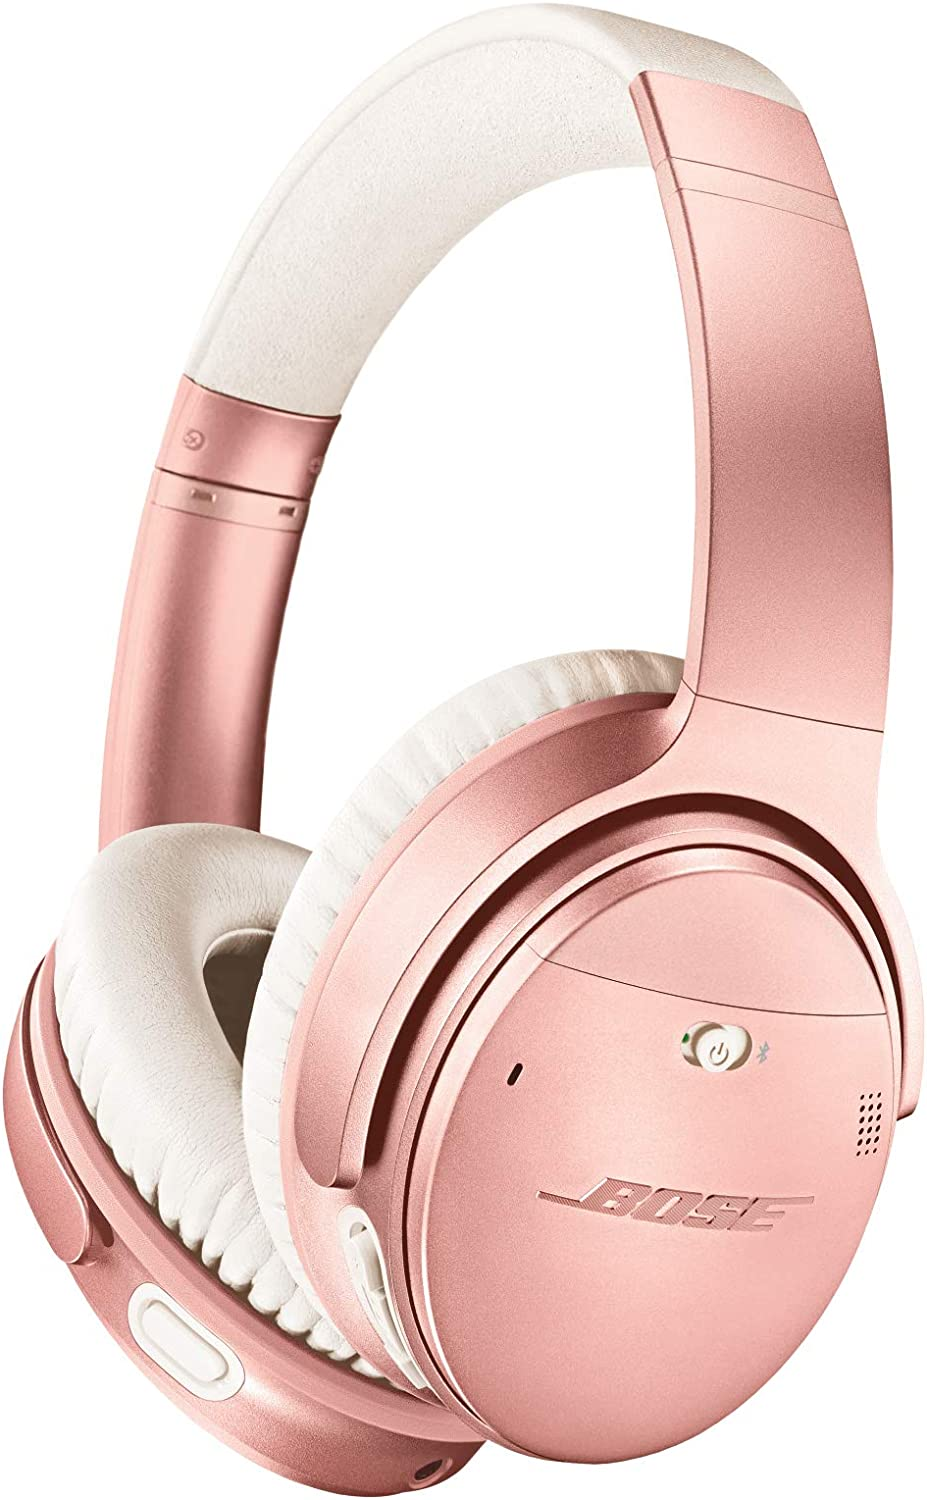 A pair of headphones specialized in external sound blocking.